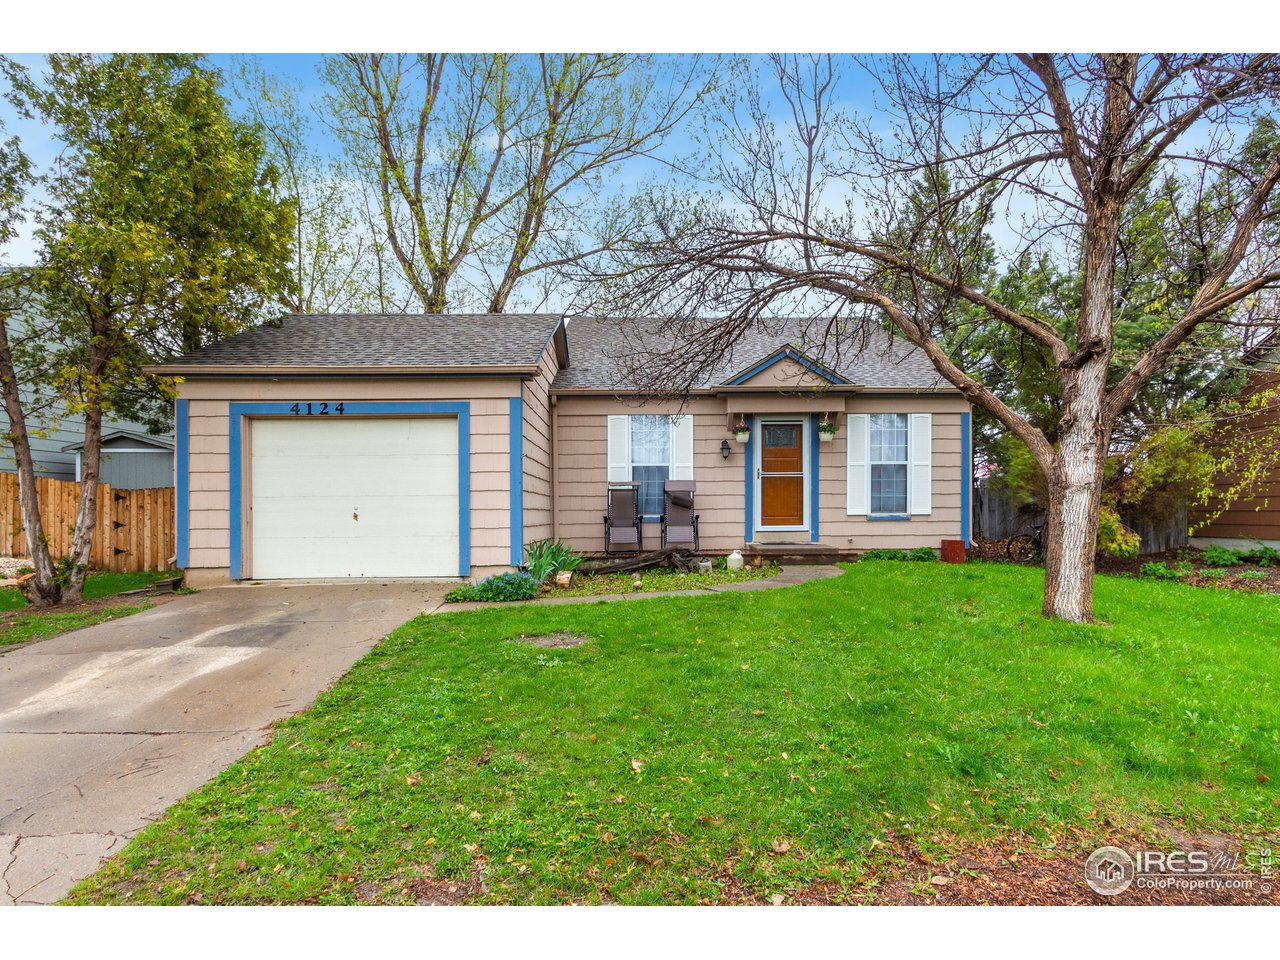 4124 Tanager St, Fort Collins CO 80526